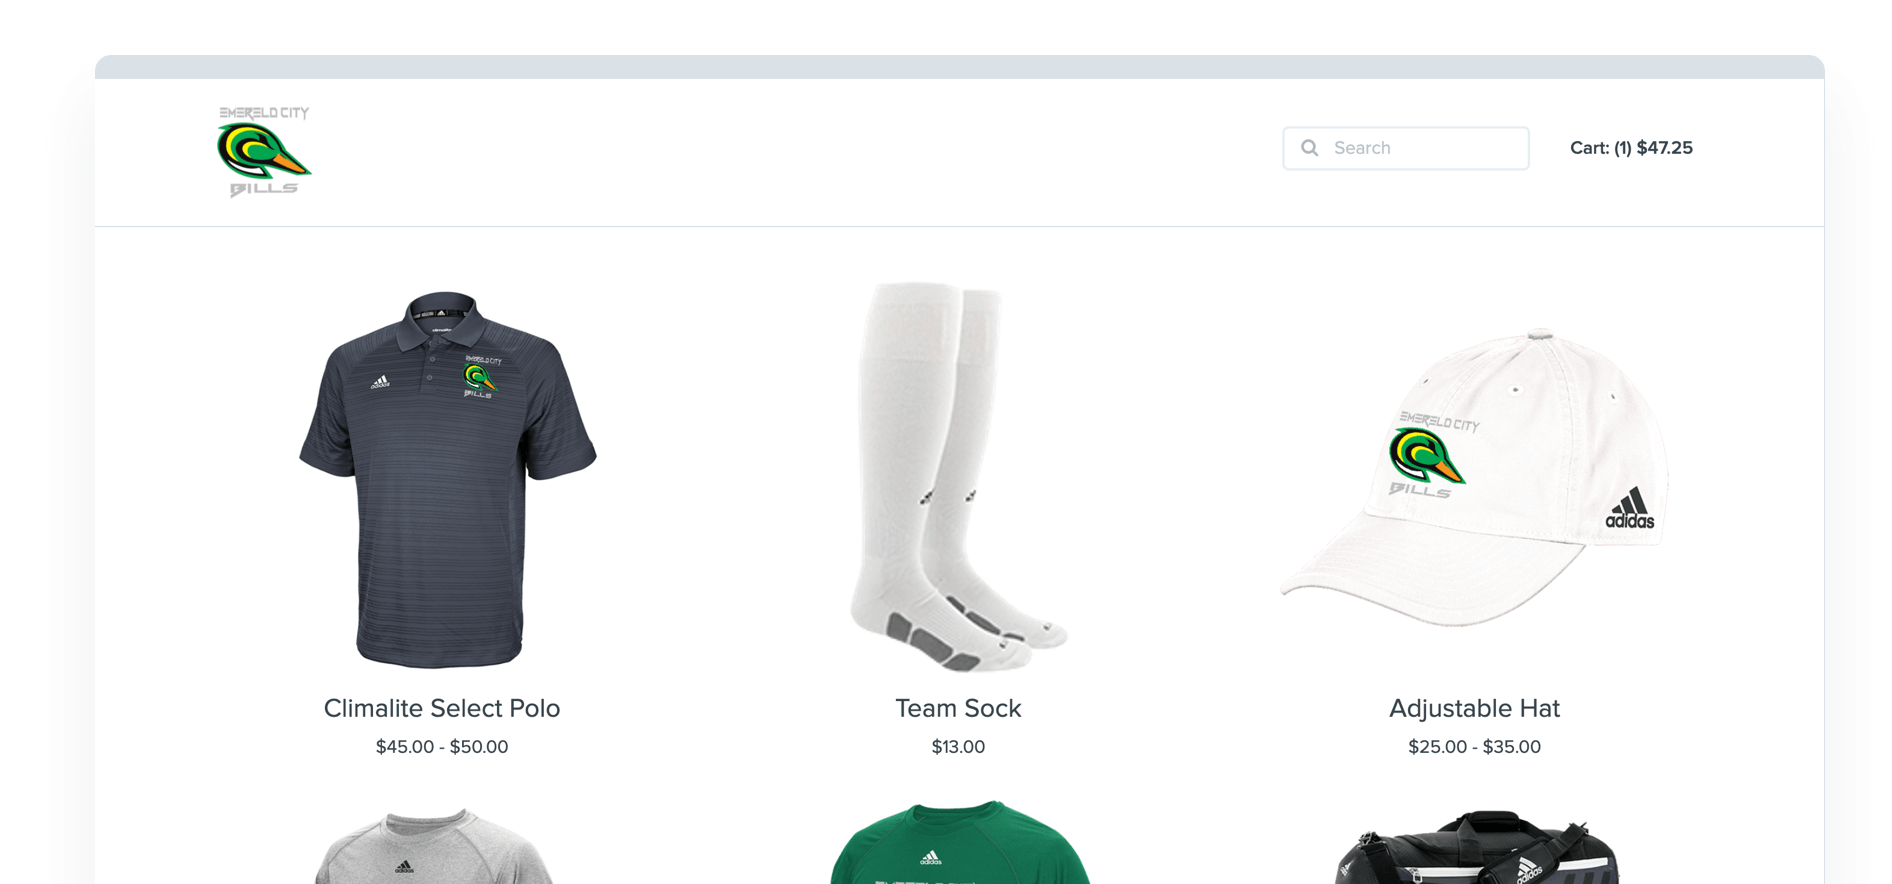 Printavo Merch screenshot - Group ordering, company stores, fundraisers made easy